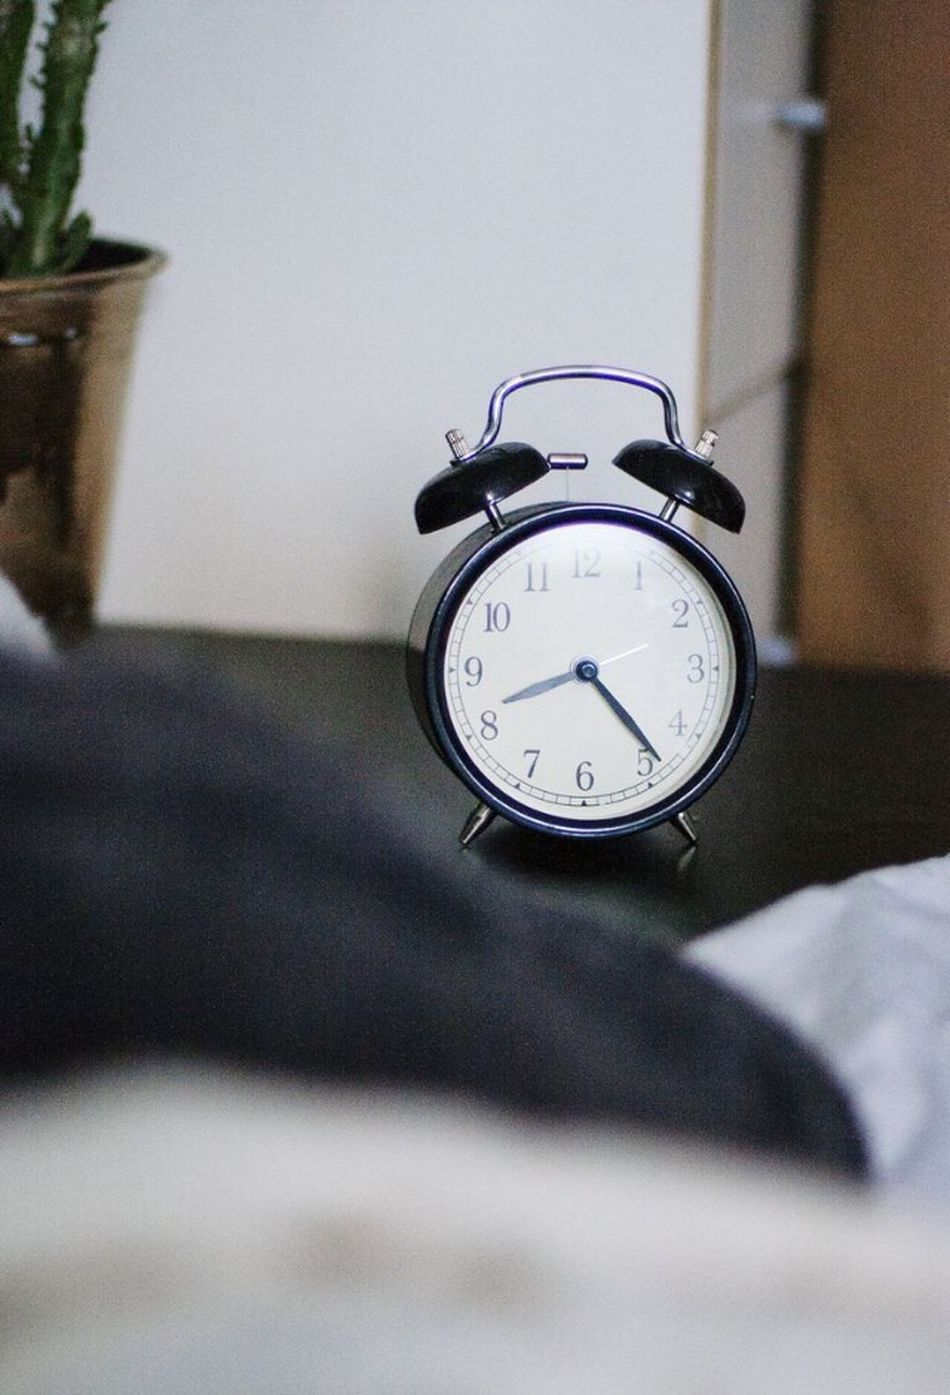 Clock Alarm Clock Time Bed Focus On Foreground Bedroom No People Close-up Indoors  Clock Face Day Peace EyeEmNewHere Savings Morning Wake Up Early Morning AlarmClock Looking At Camera Daydreaming Welcome To Black